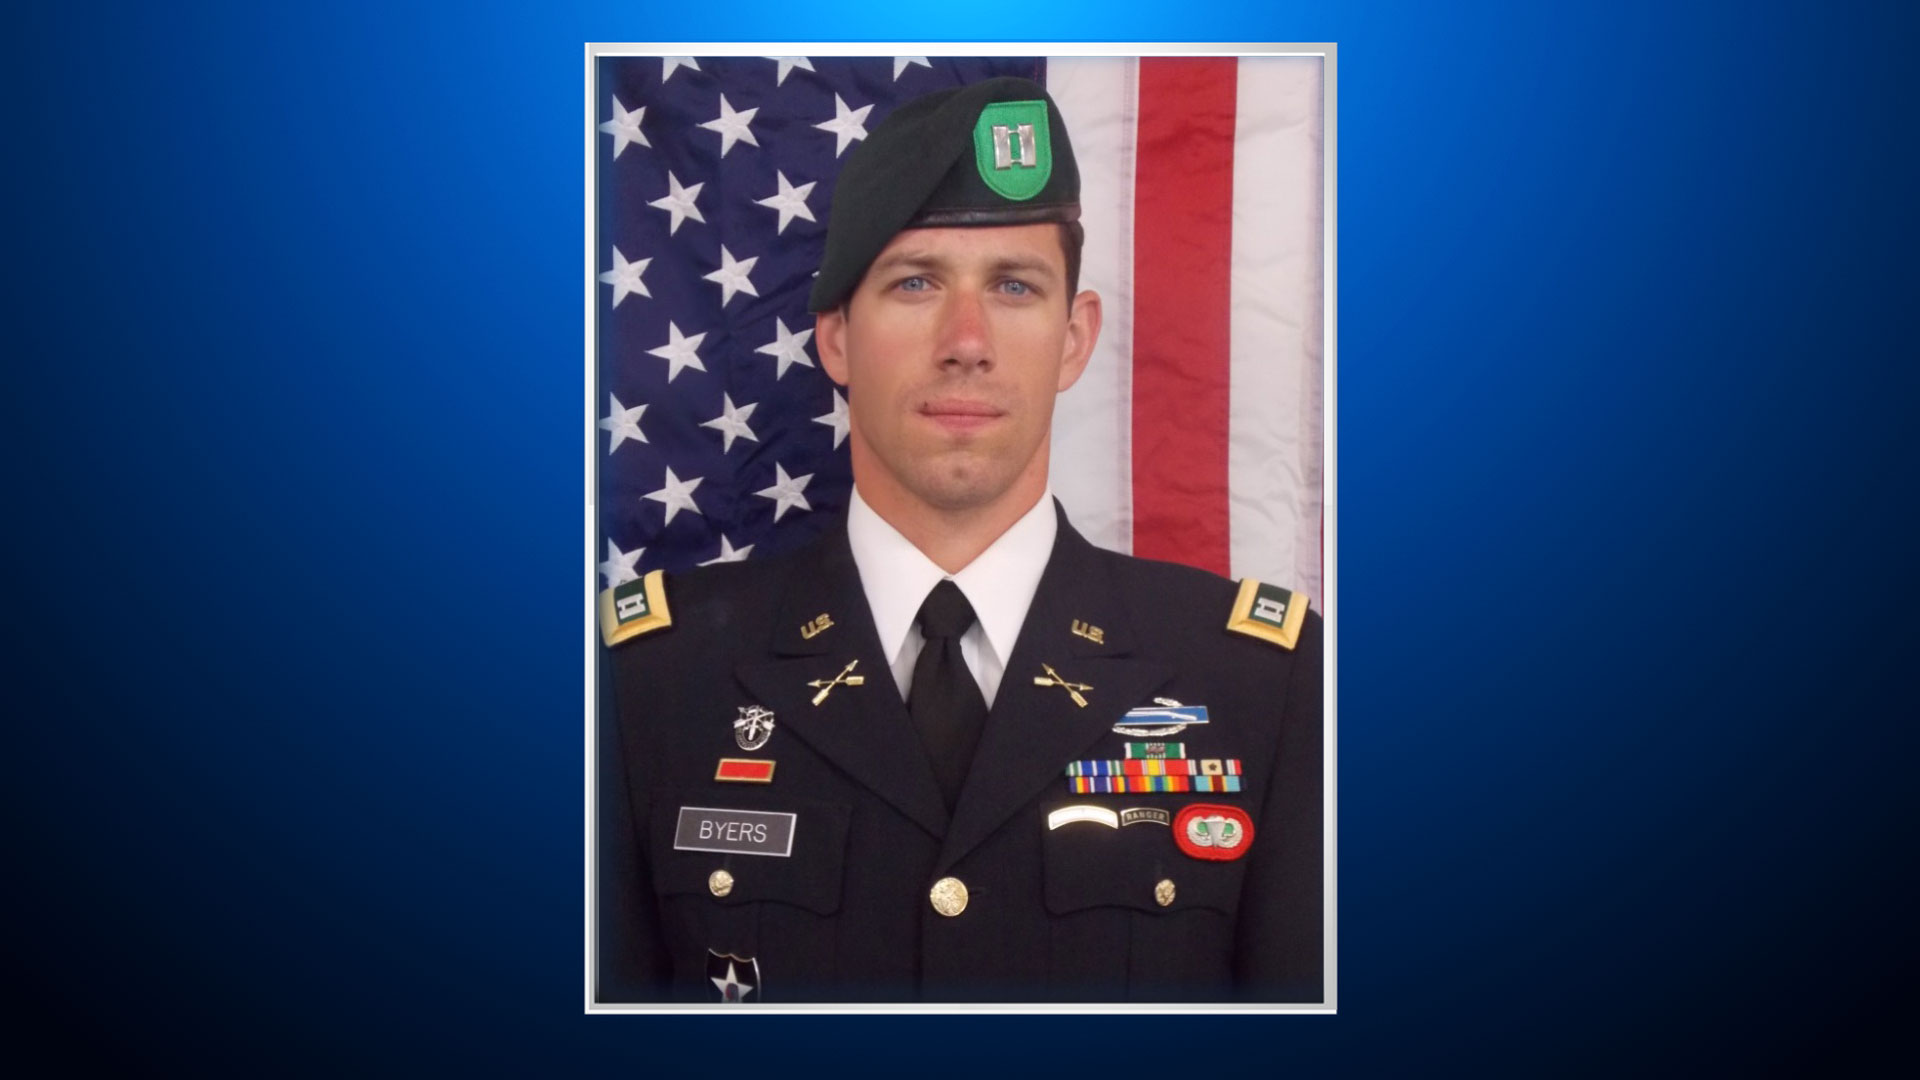 Capt. Andrew D. Byers (credit: Fort Carson)